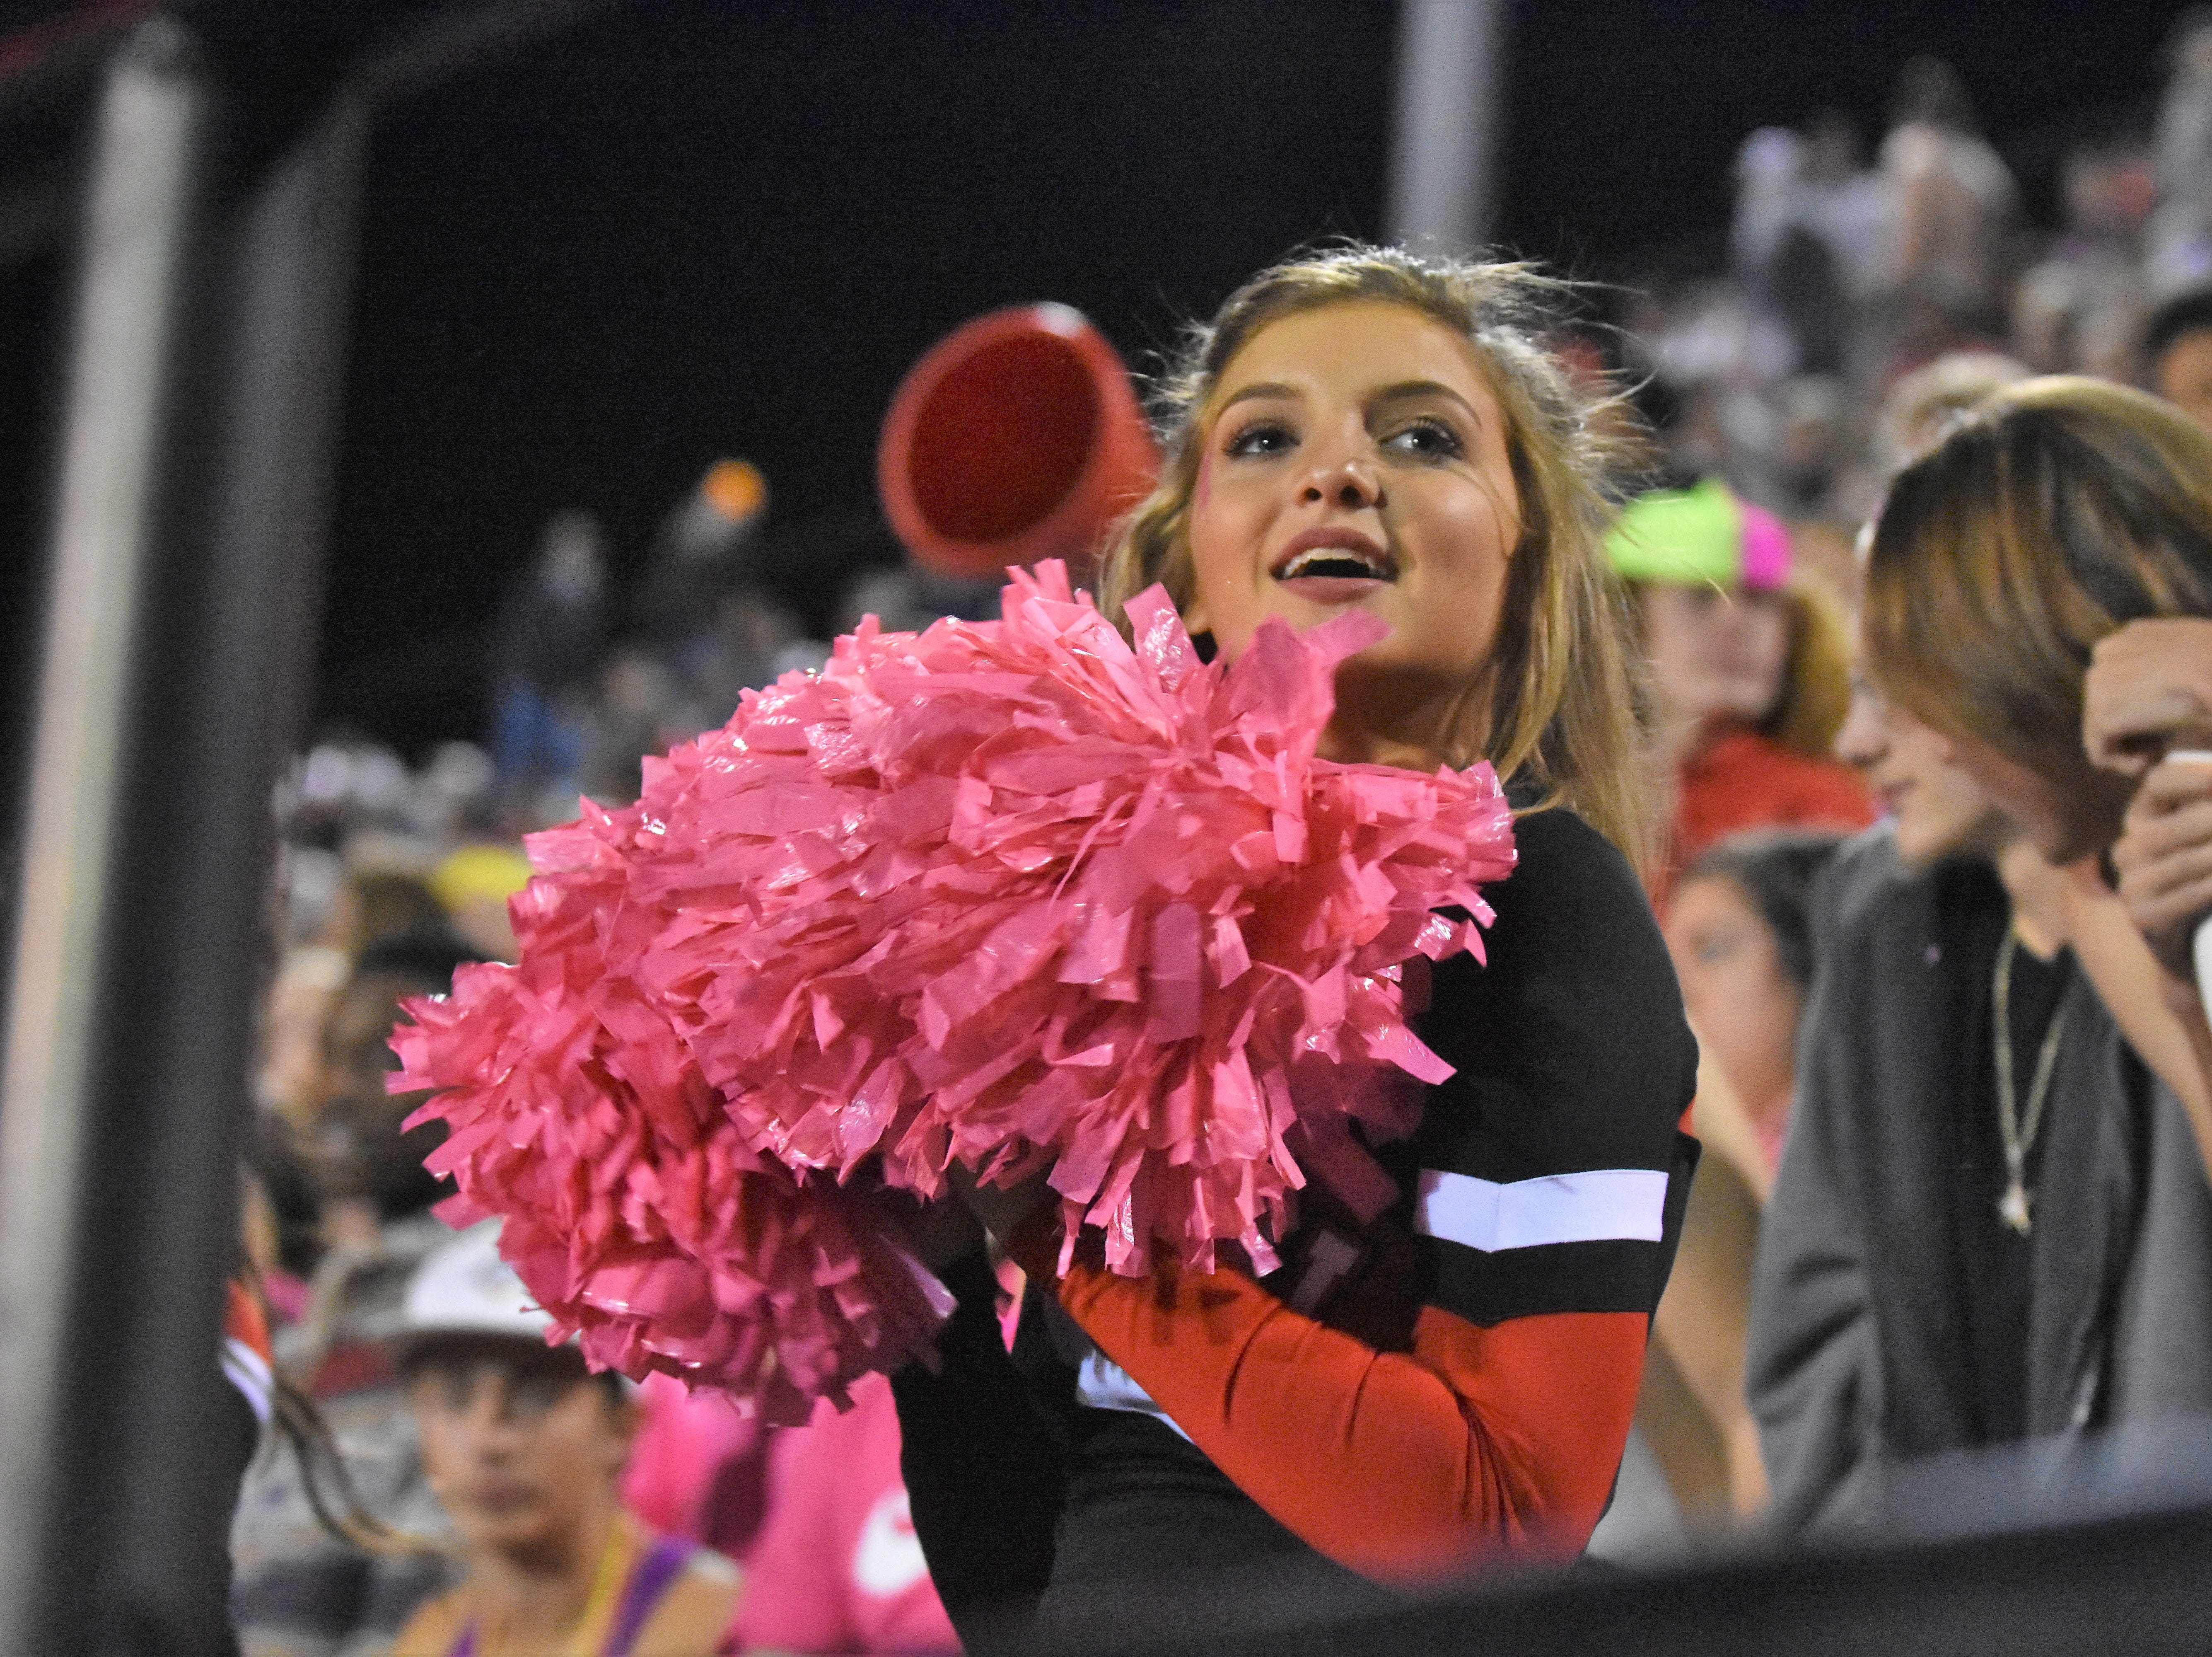 It was a night to celebrate as the Central High Bobcats defeated the South-Doyle Cherokees 35-0 on Friday, Oct. 19.